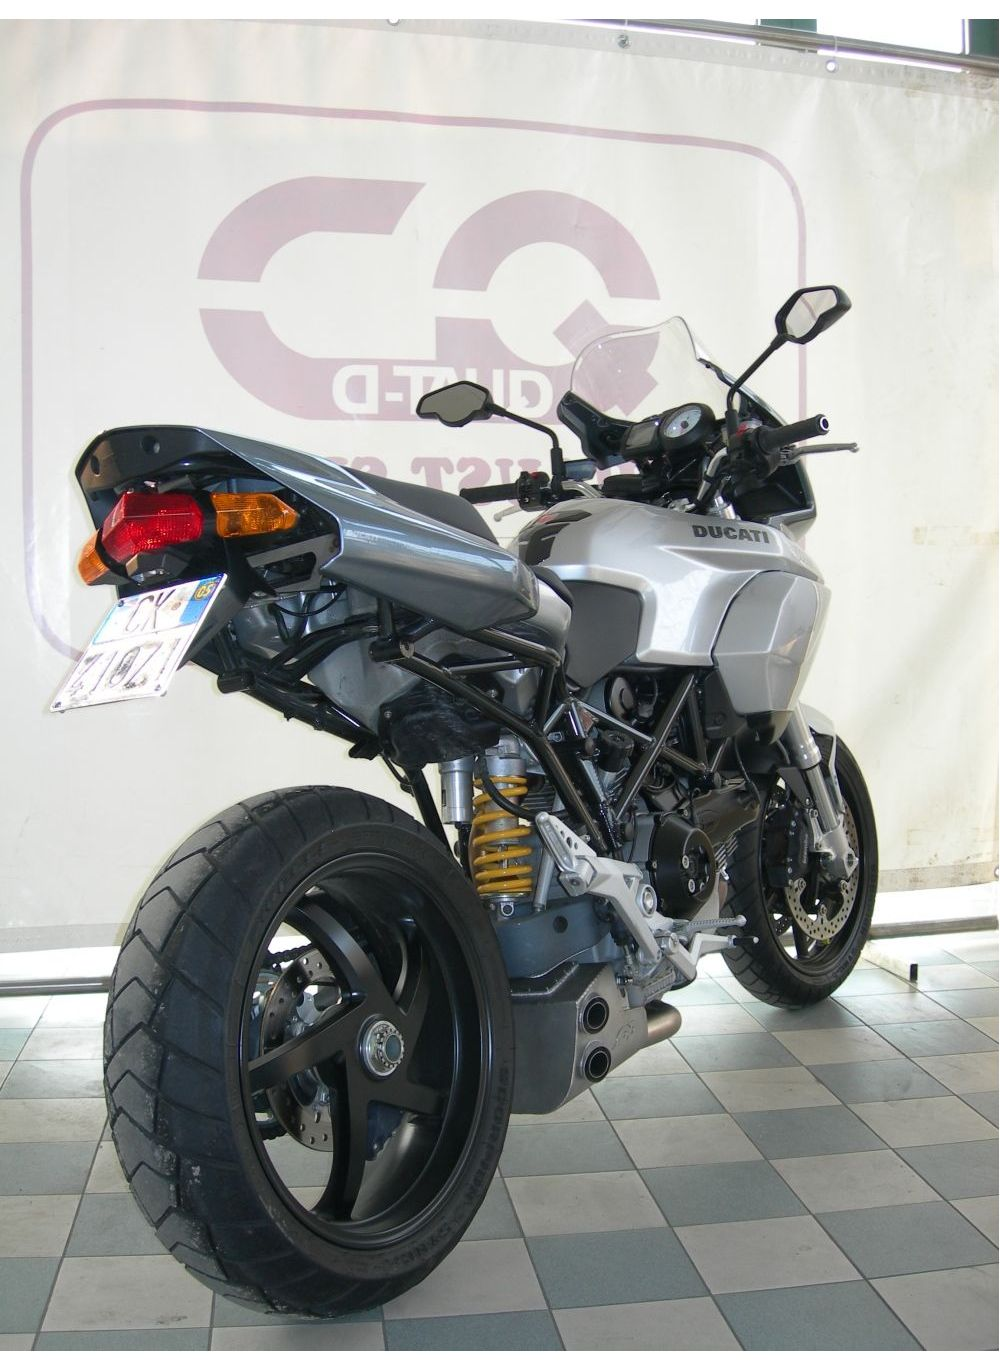 qd exbox uitlaat ducati multistrada 1000 1100 g g shop. Black Bedroom Furniture Sets. Home Design Ideas